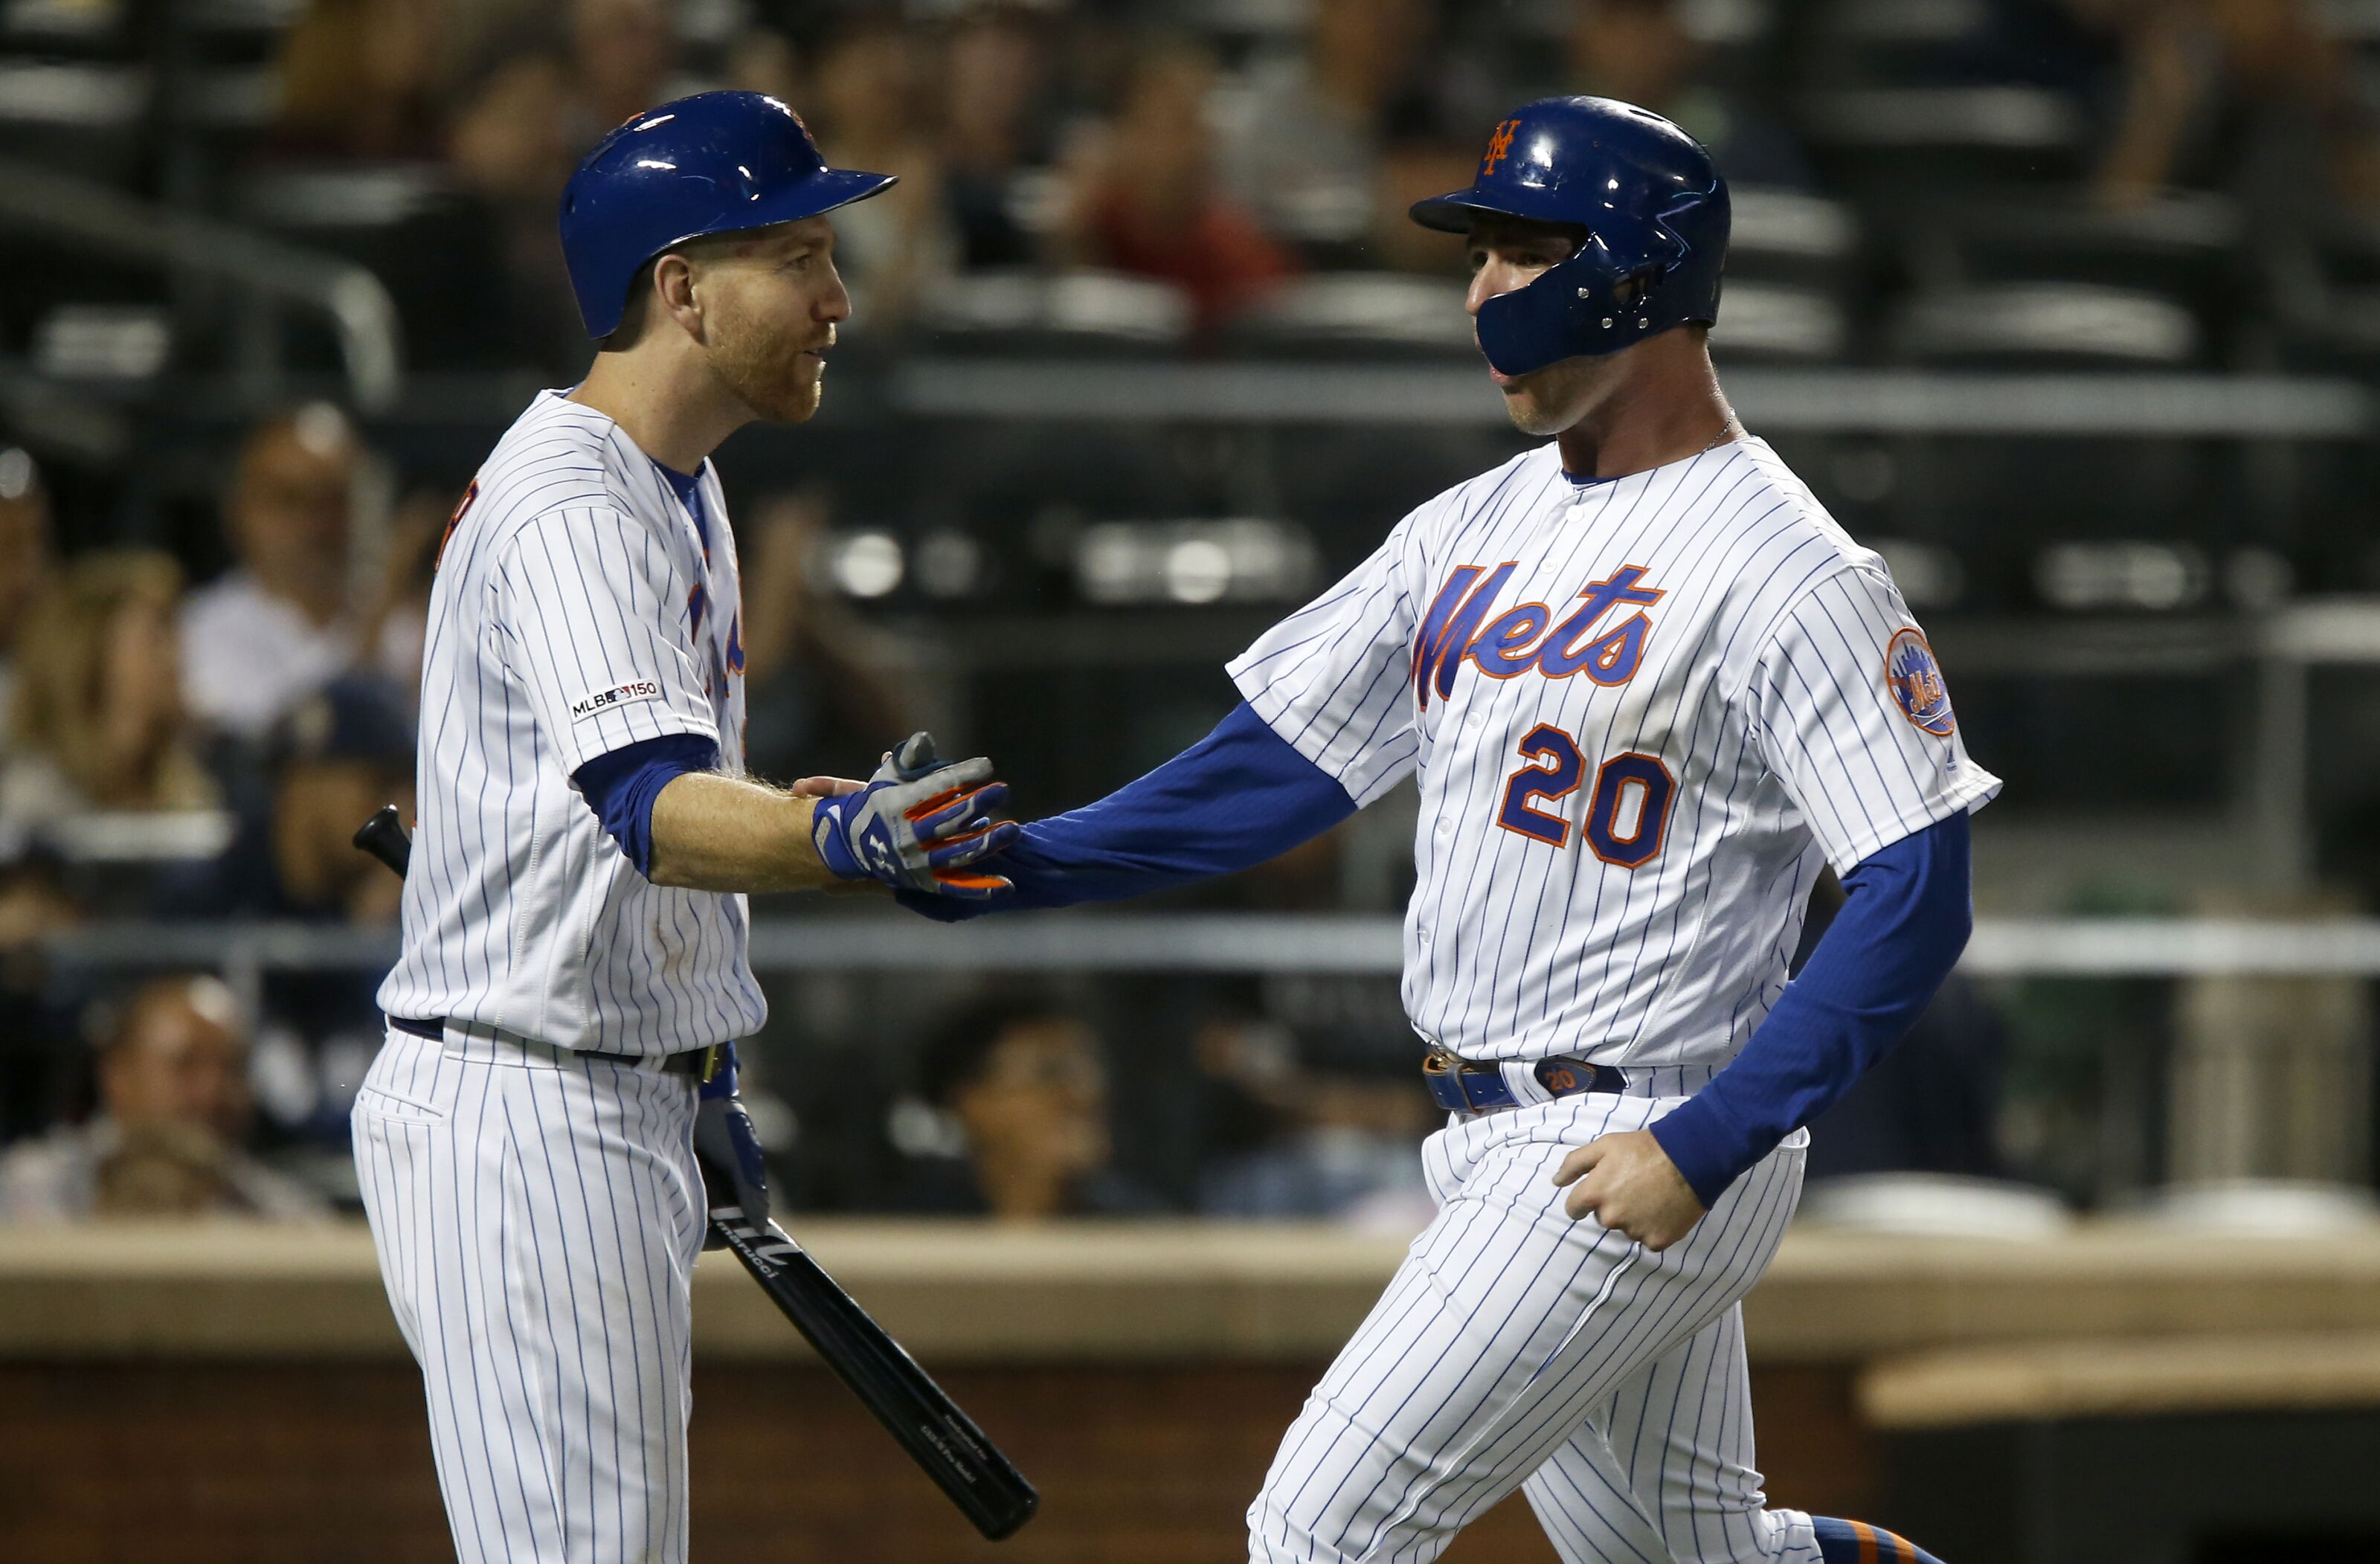 The New York Mets are making their move with the strength of the Niagara Falls